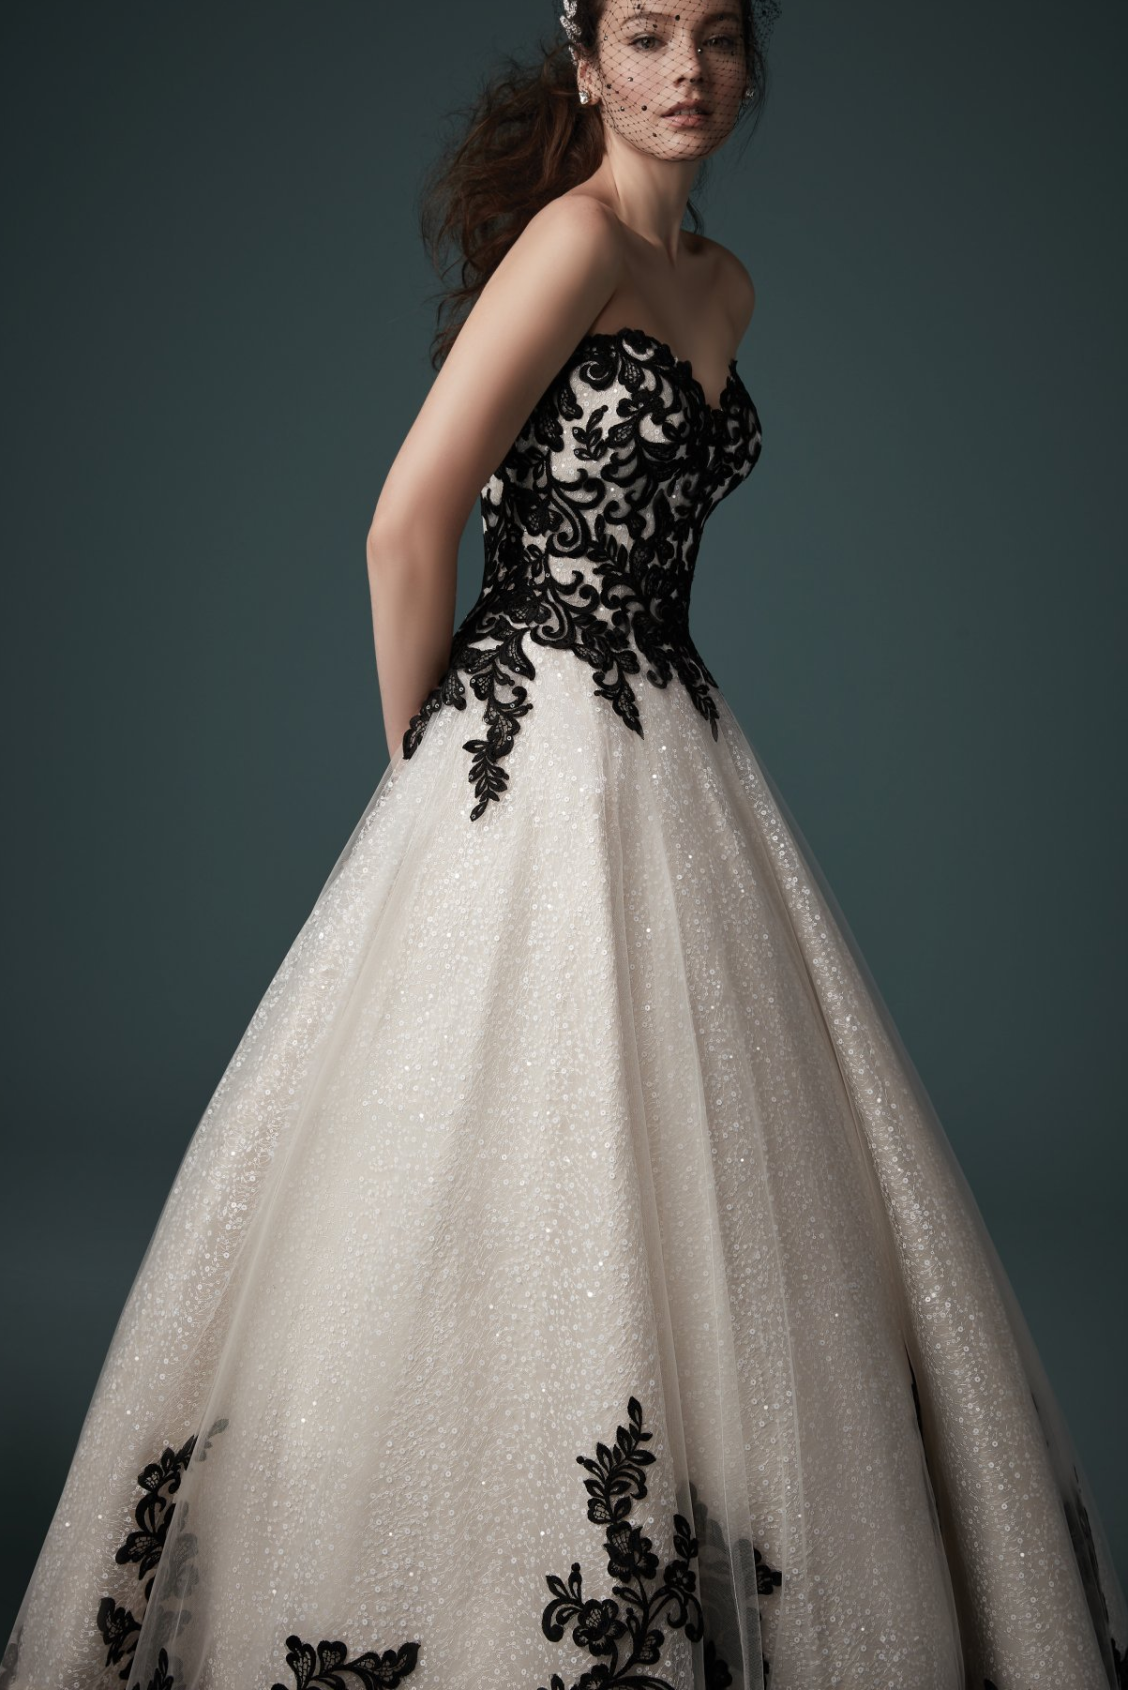 Tristyn By Maggie Sottero Wedding Dresses And Accessories Black Wedding Gowns Gothic Wedding Dress Wedding Dresses Lace Ballgown [ 1690 x 1128 Pixel ]